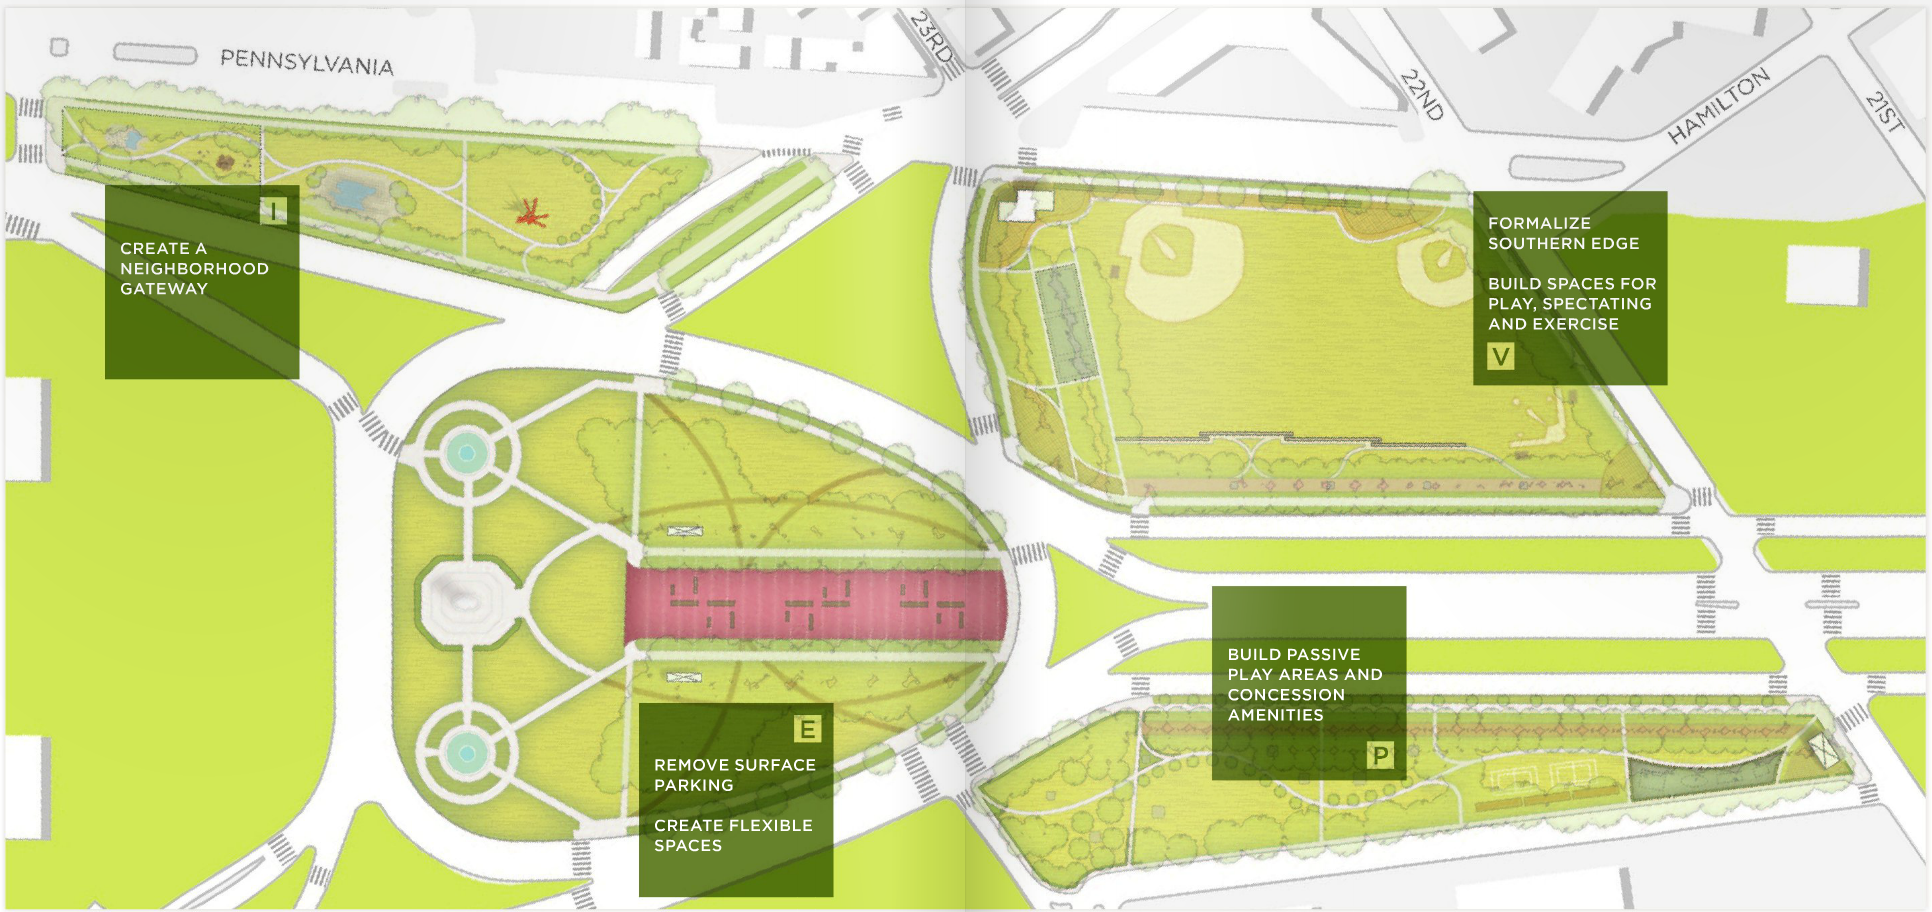 More Park, Less Way: Eakins Oval